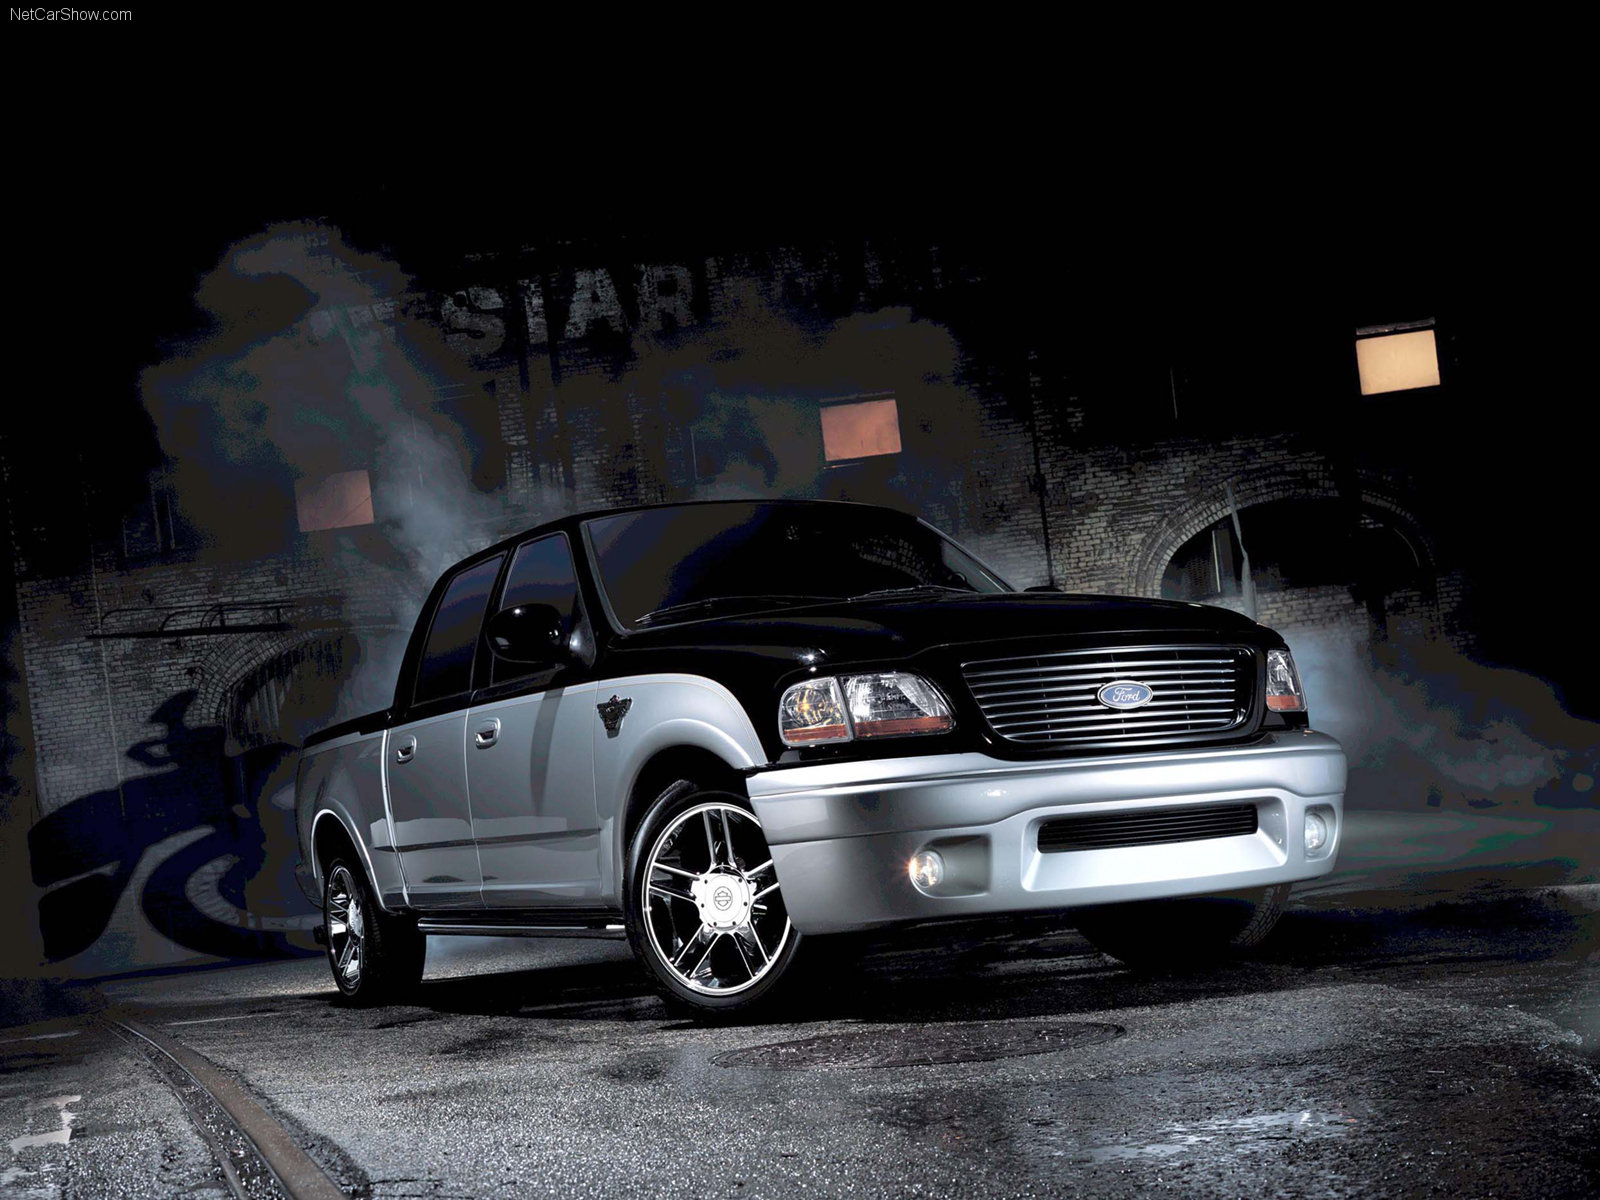 Ford F-150 photo #33169